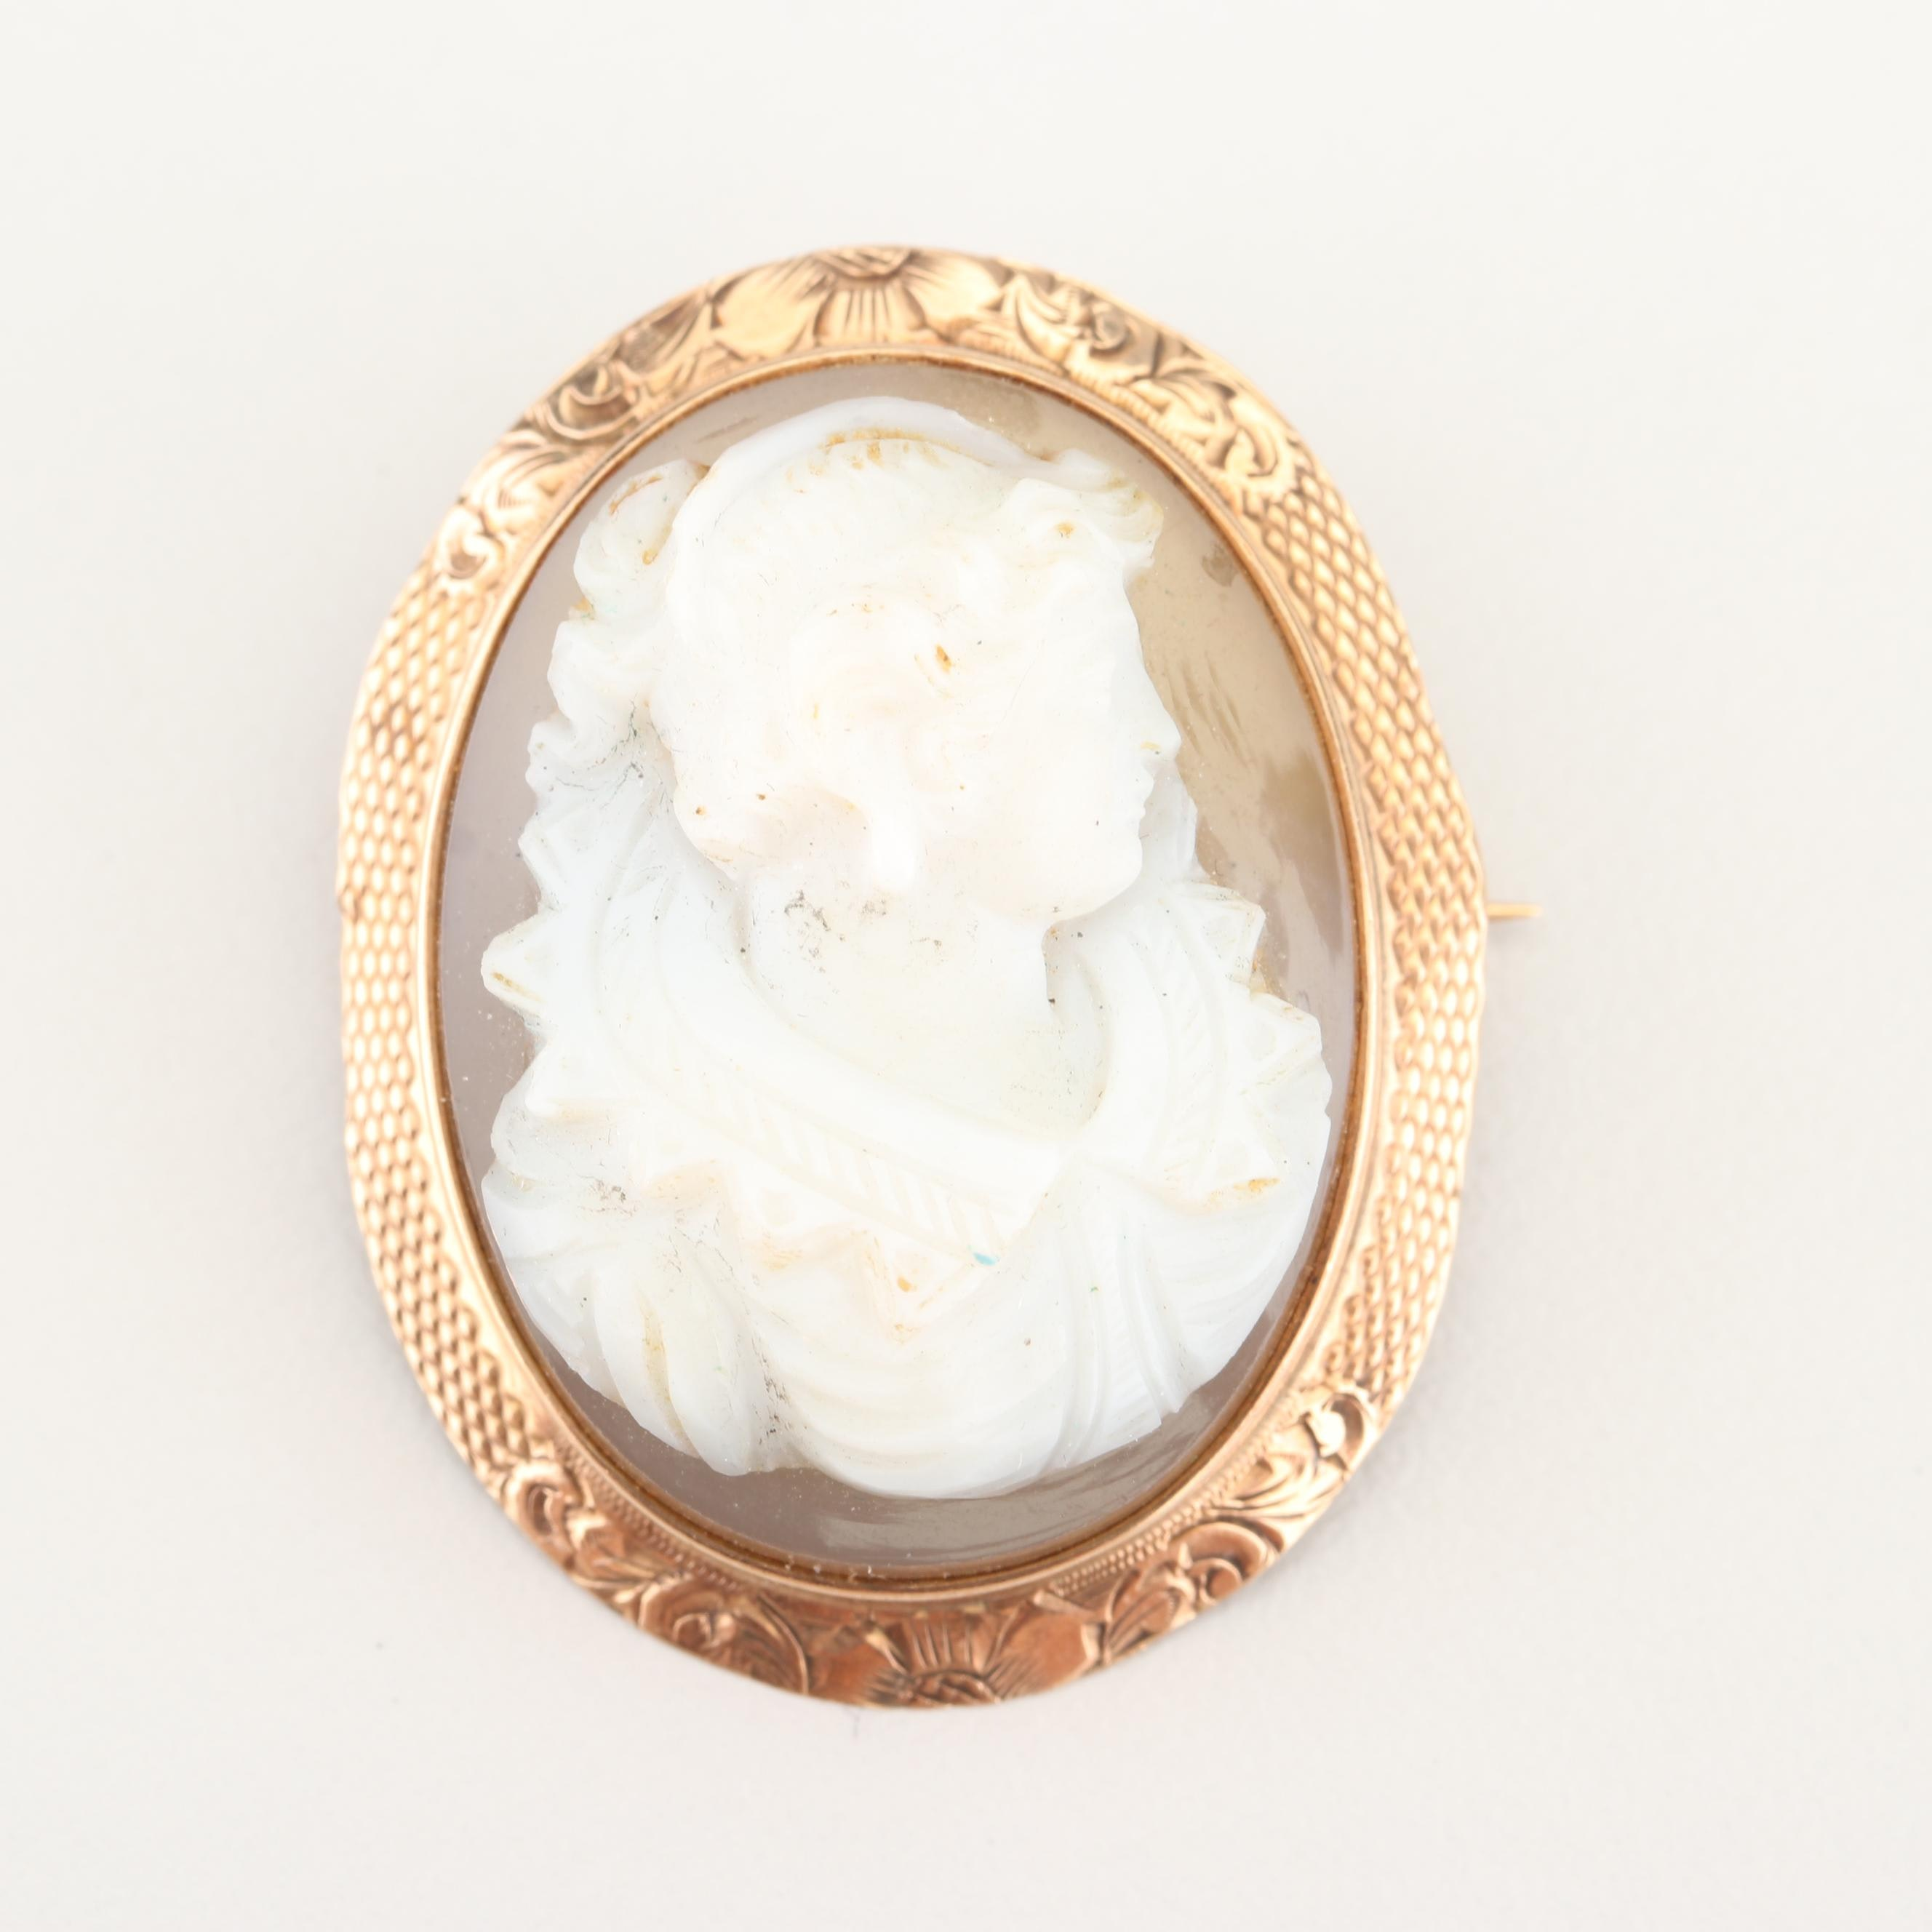 Victorian 10K Yellow Gold Carved Shell Cameo Brooch or Pendant